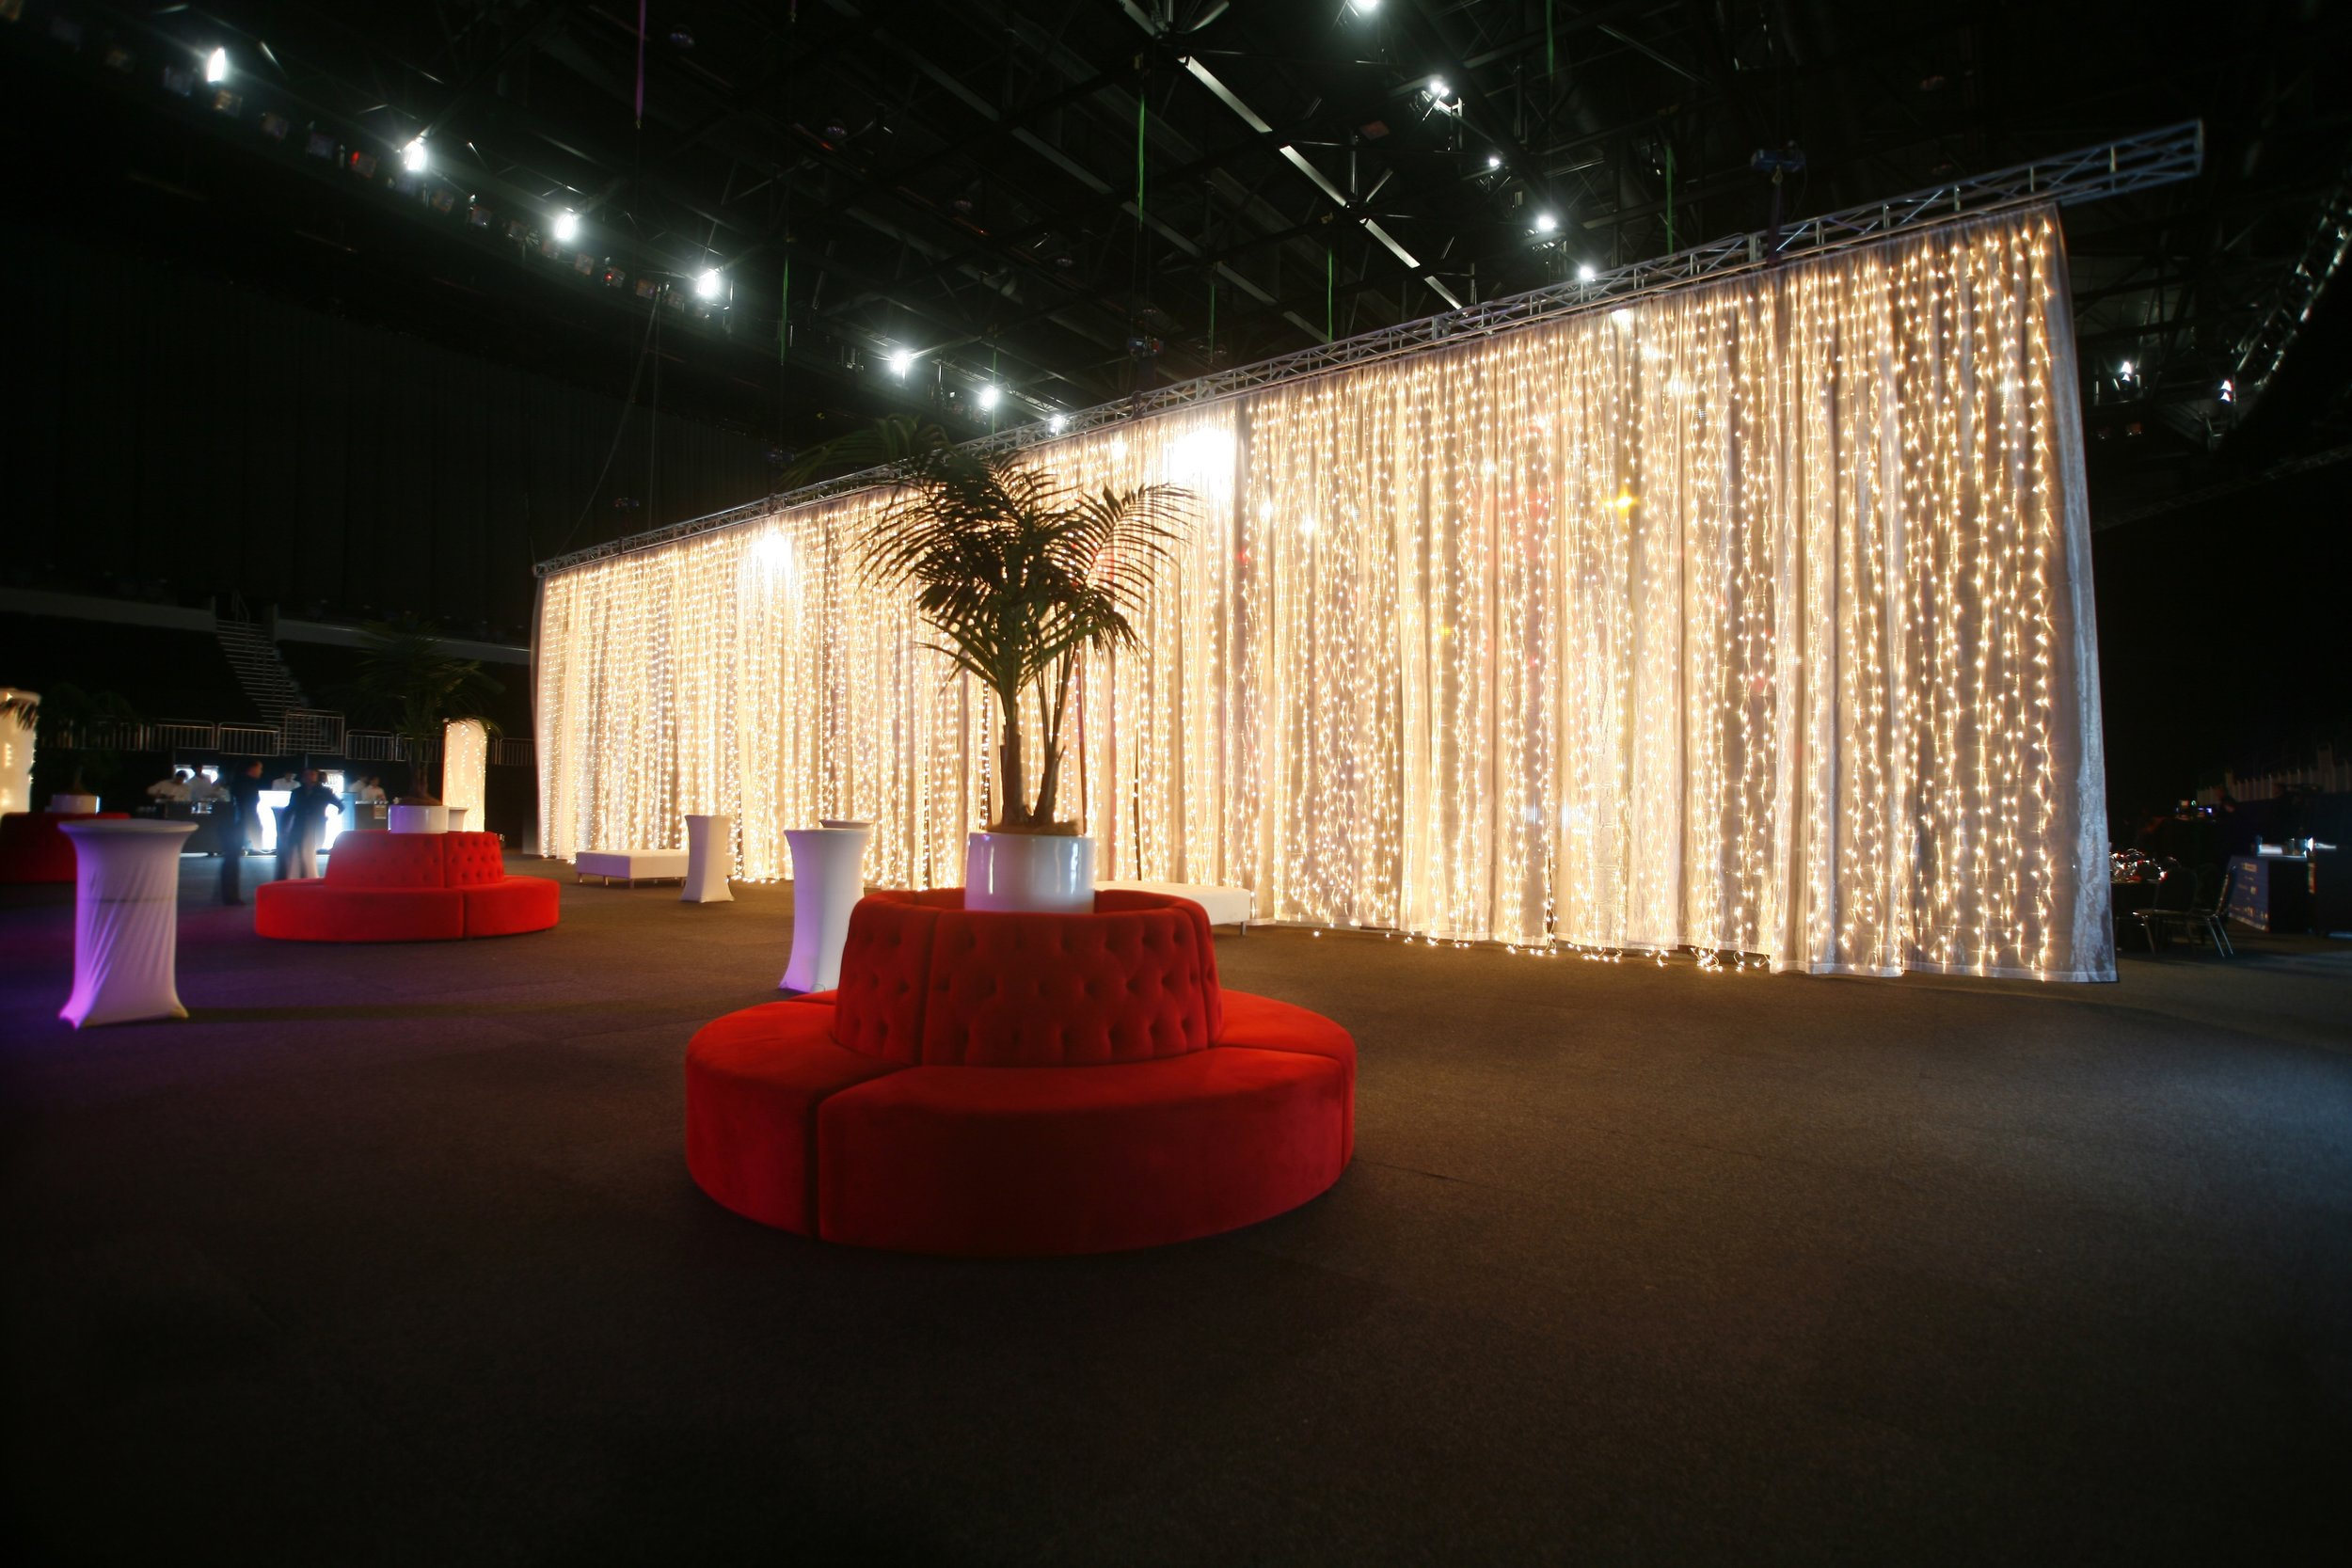 6m curtain lights with white organza